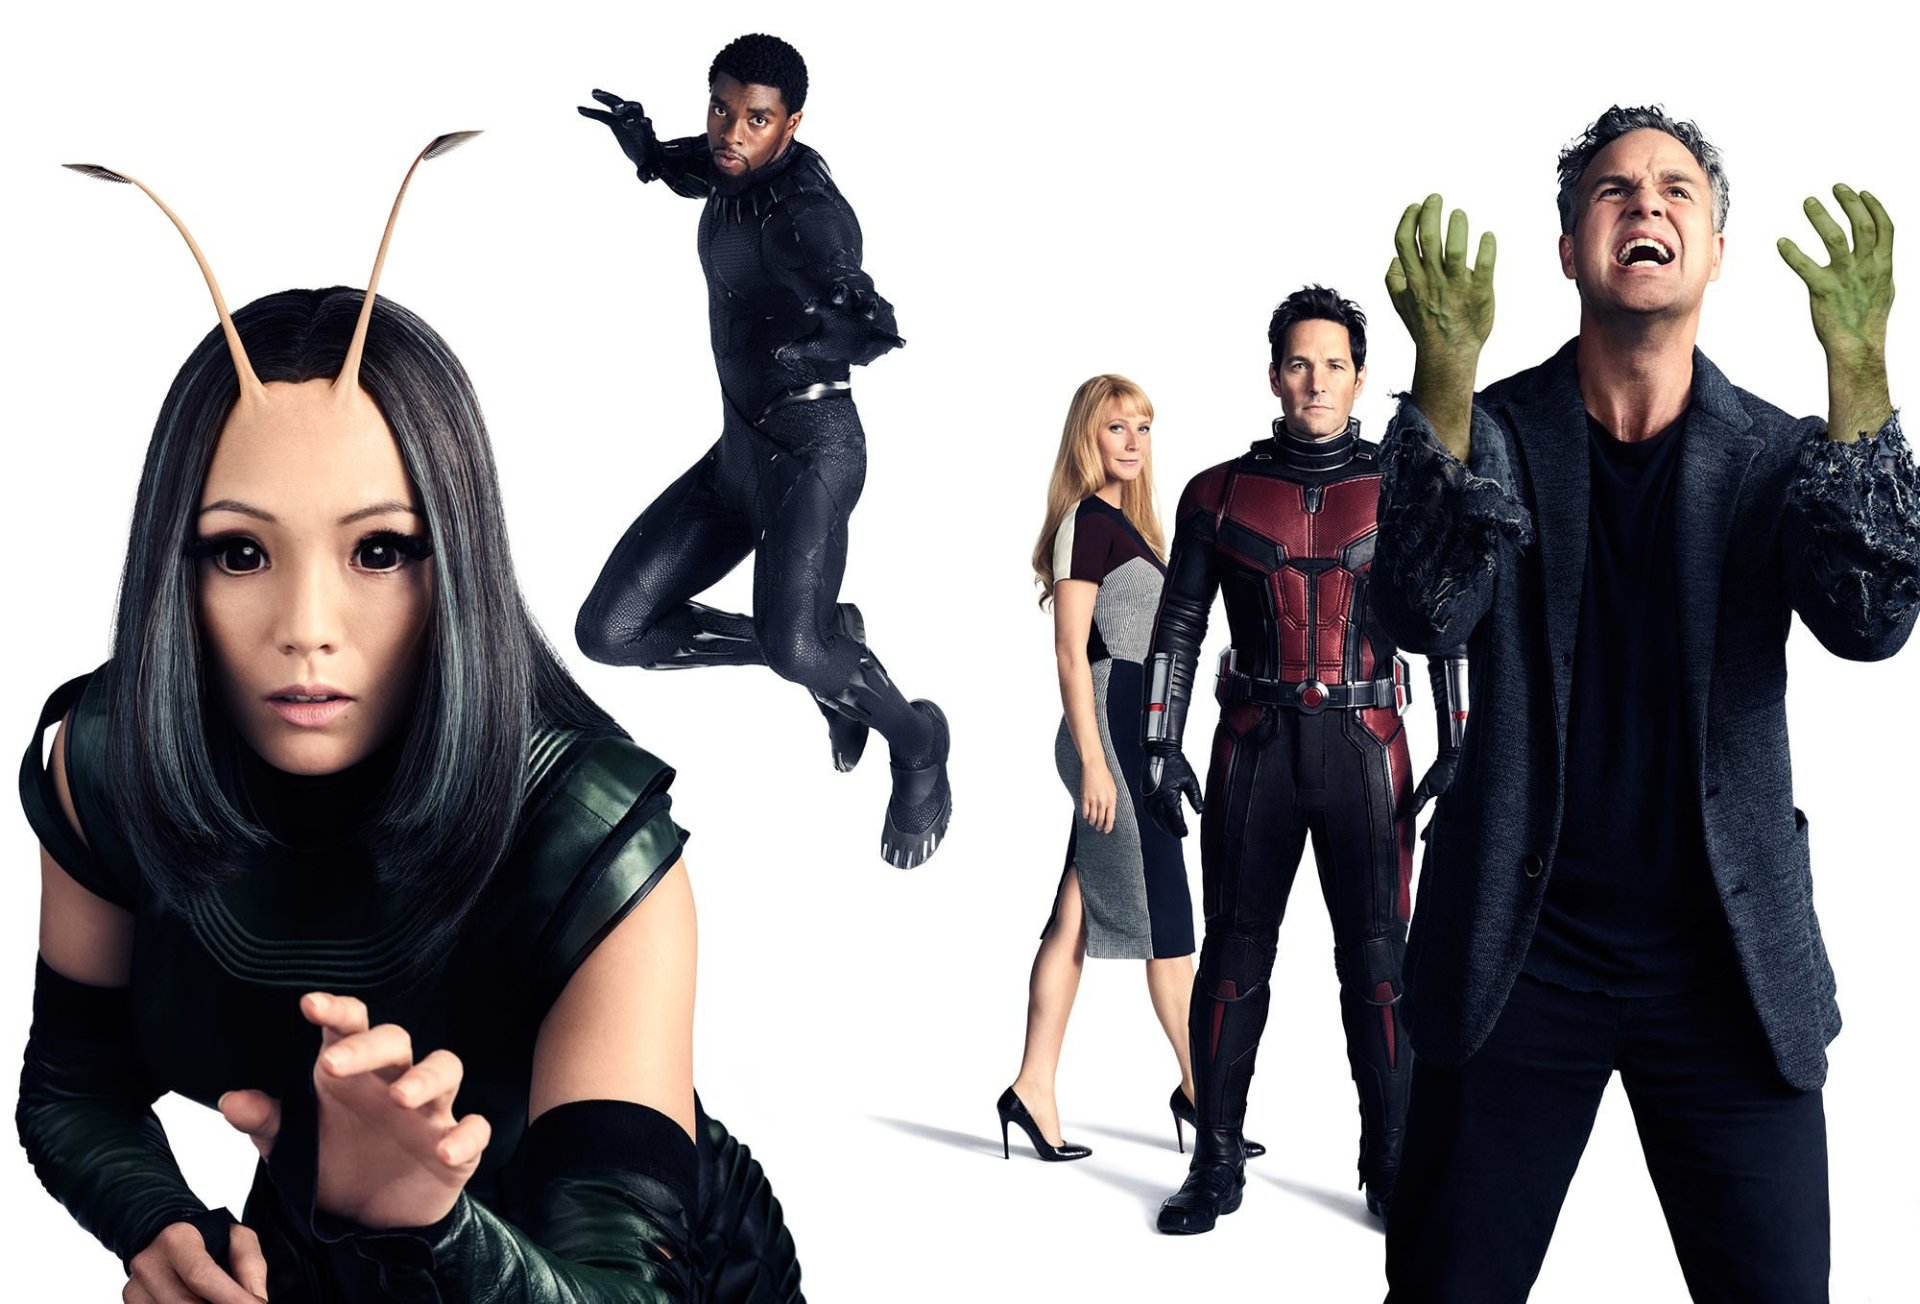 Movie - Avengers: Infinity War  Black Panther (Marvel Comics) Chadwick Boseman Hulk Mantis (Marvel Comics) Mark Ruffalo Ant-Man Paul Rudd Pom Klementieff Gwyneth Paltrow Pepper Potts Bruce Banner Wallpaper